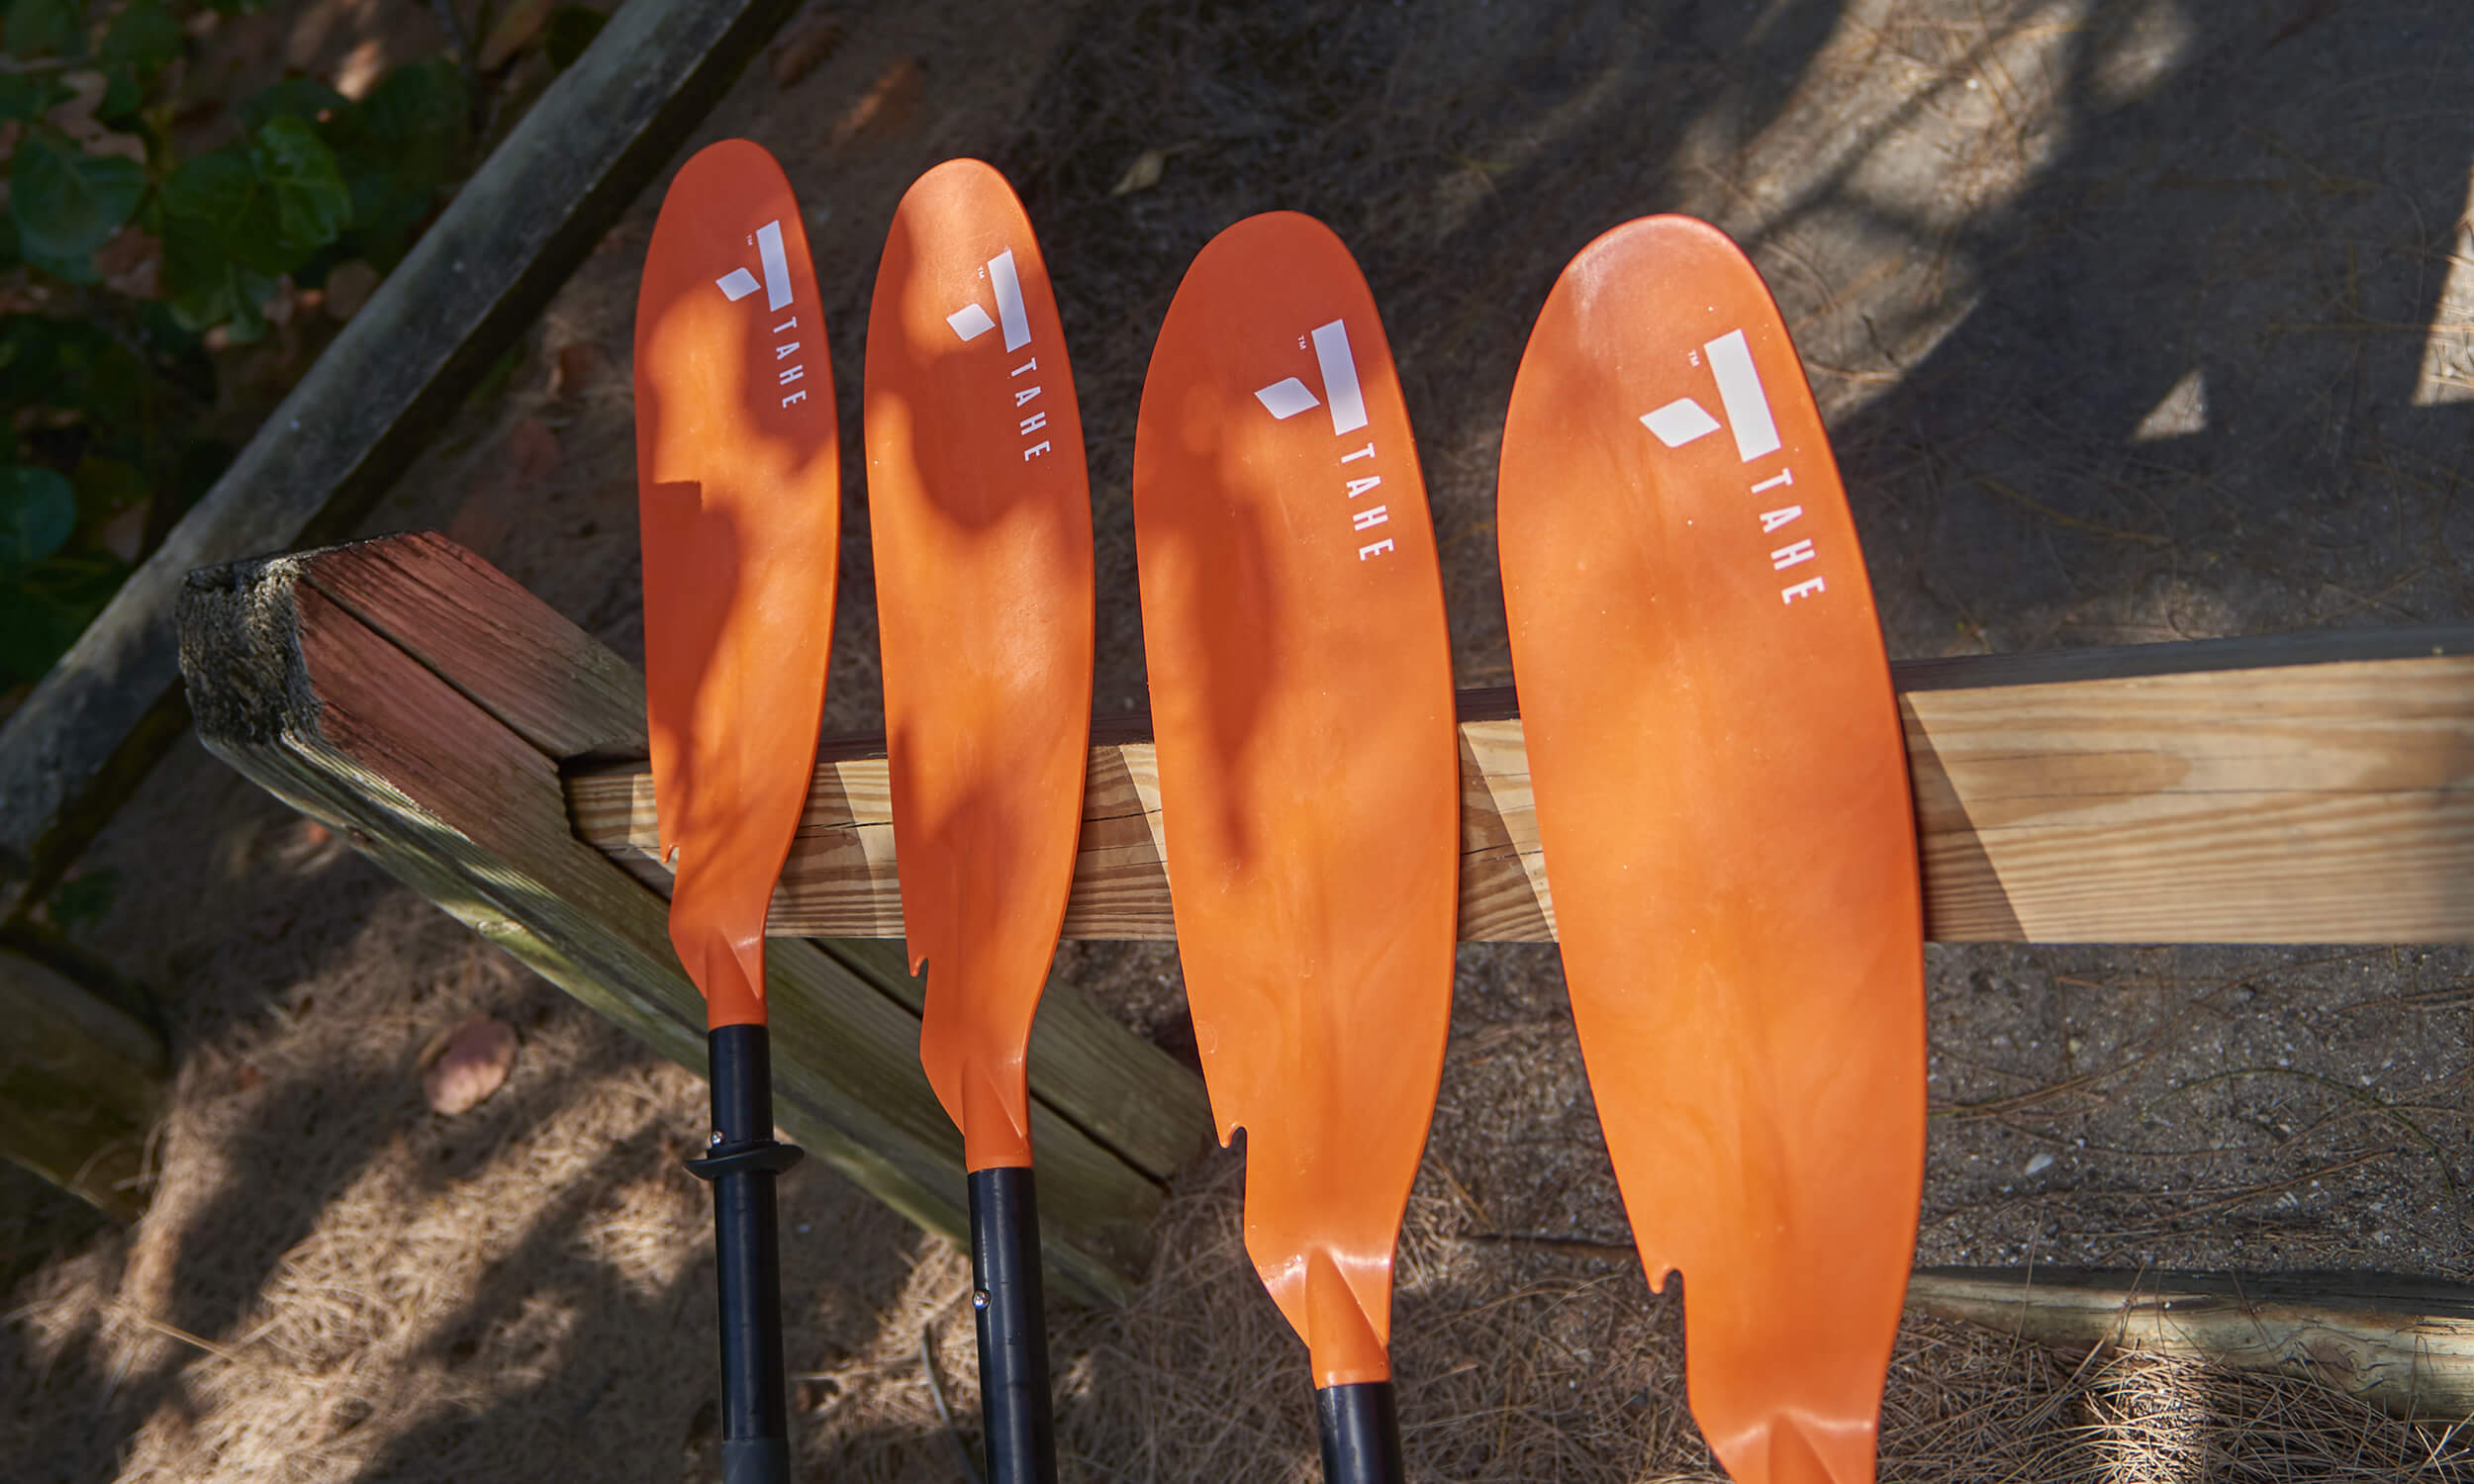 Paddle Spares